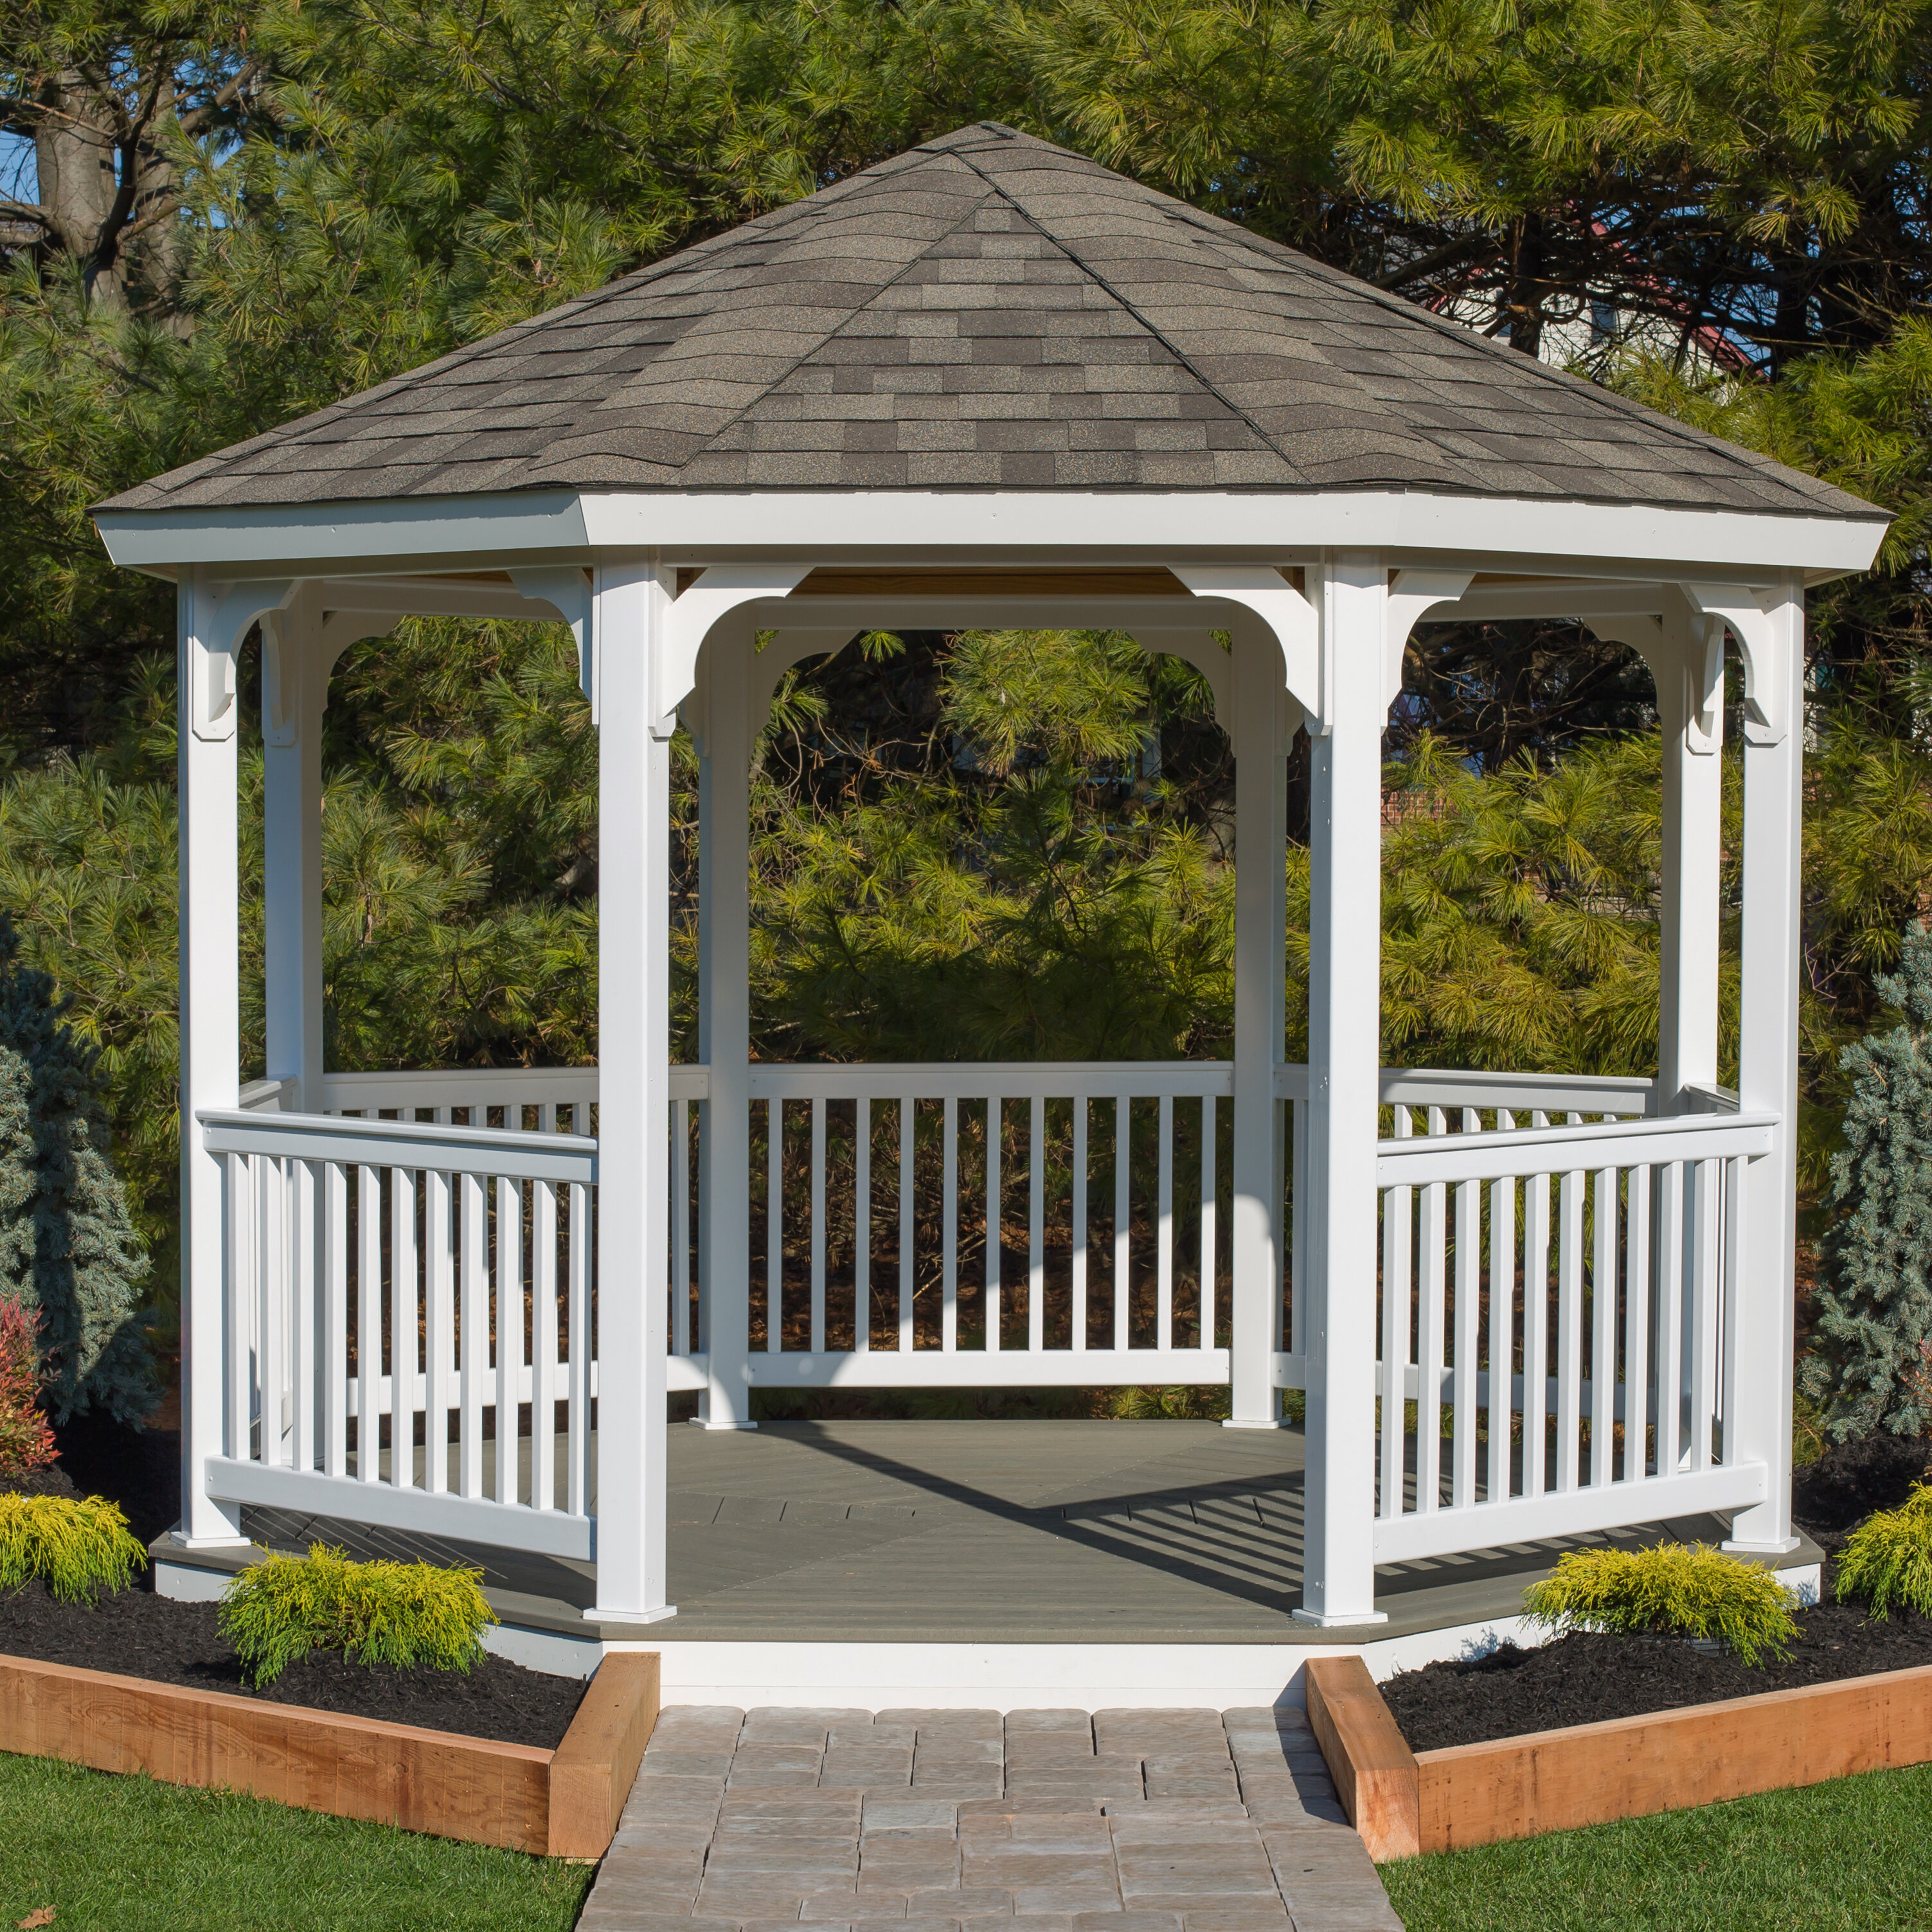 black supplies canada anthracite gazebos brunello gazebo angle casa ft hengy x pool patio